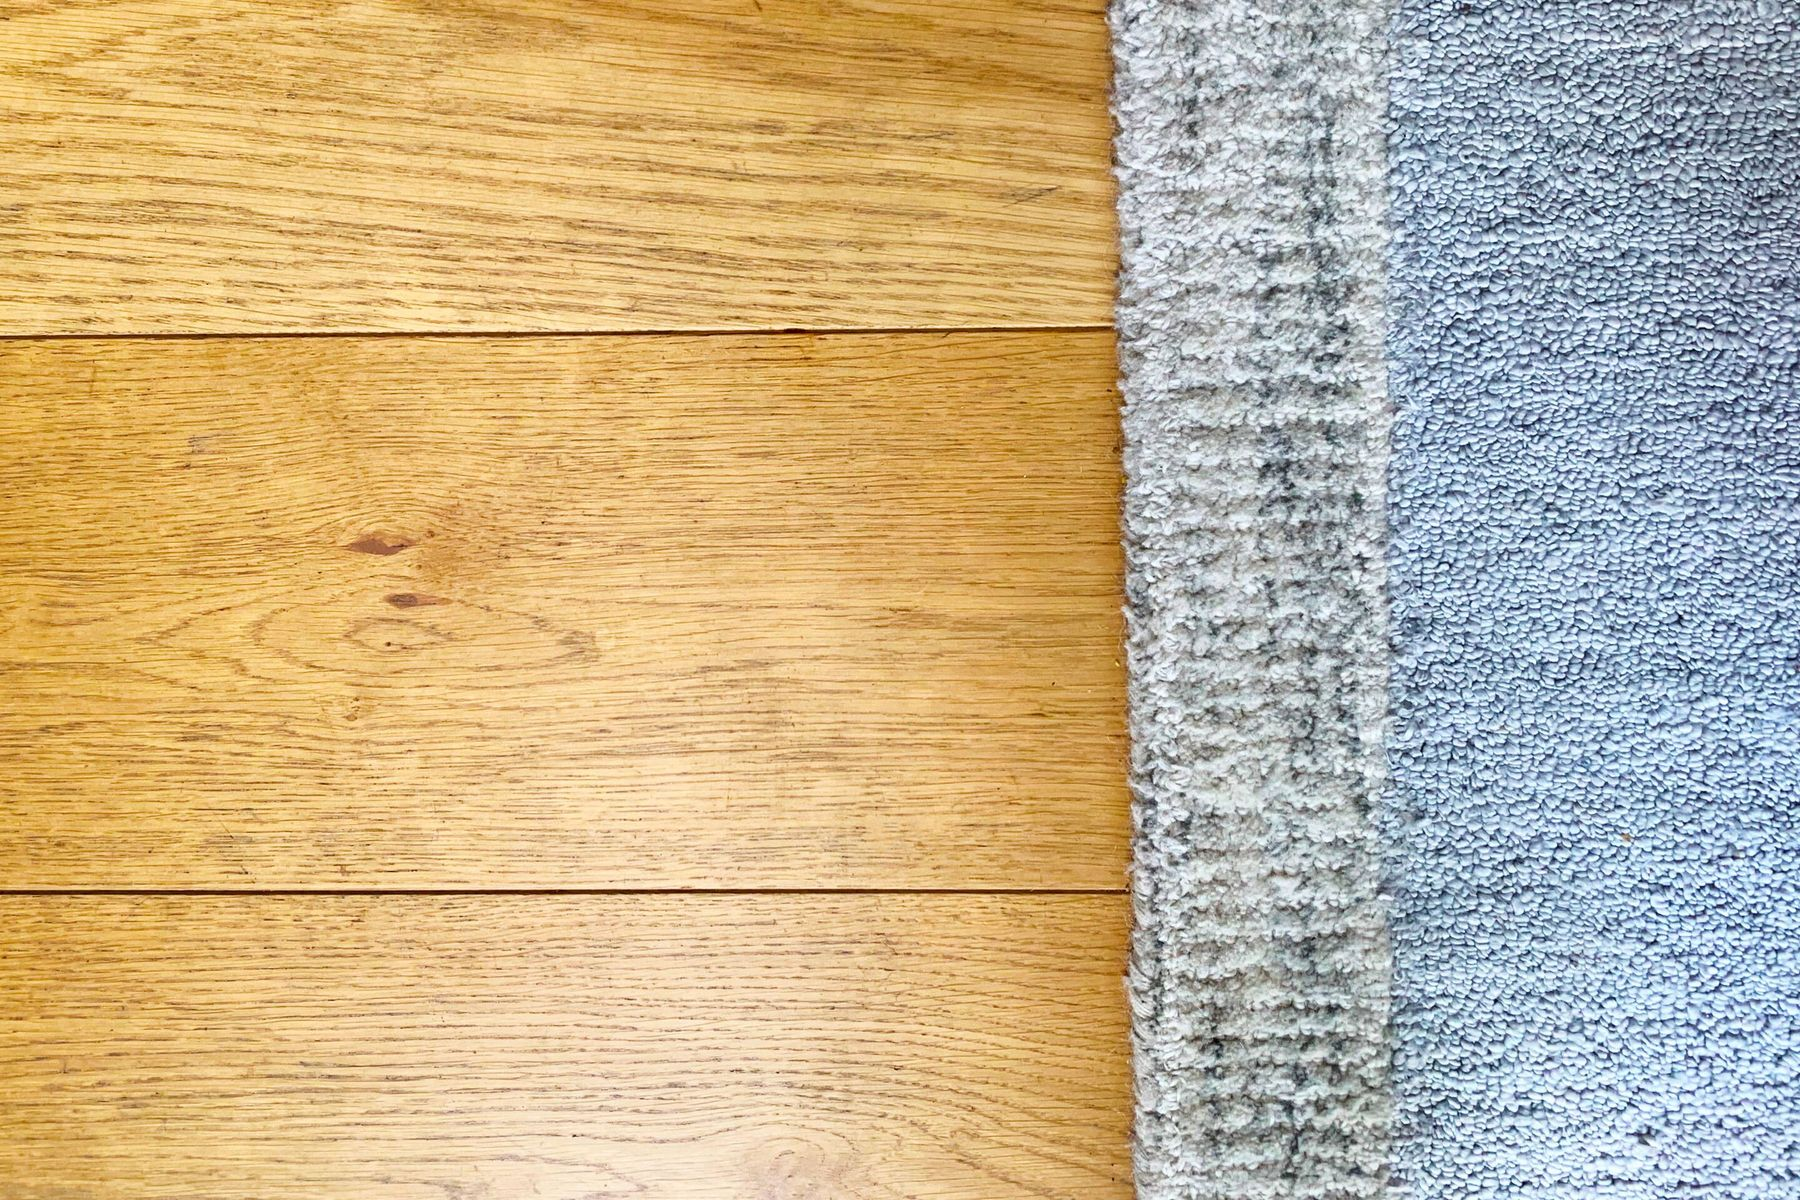 how to fill gaps in wood floors